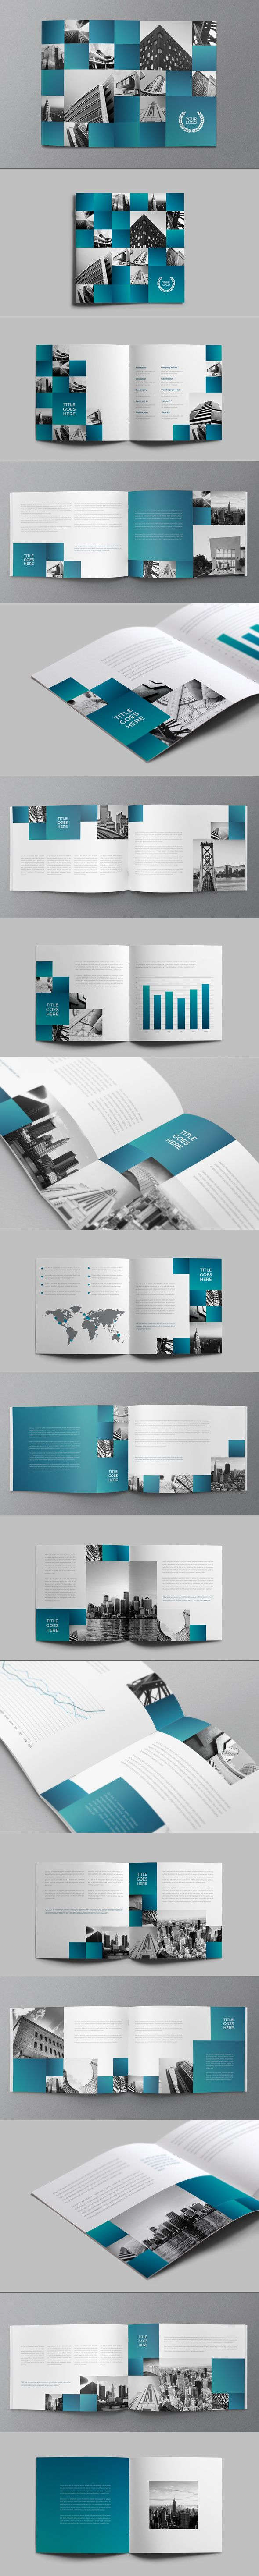 Architecture Squares Brochure by Abra Design